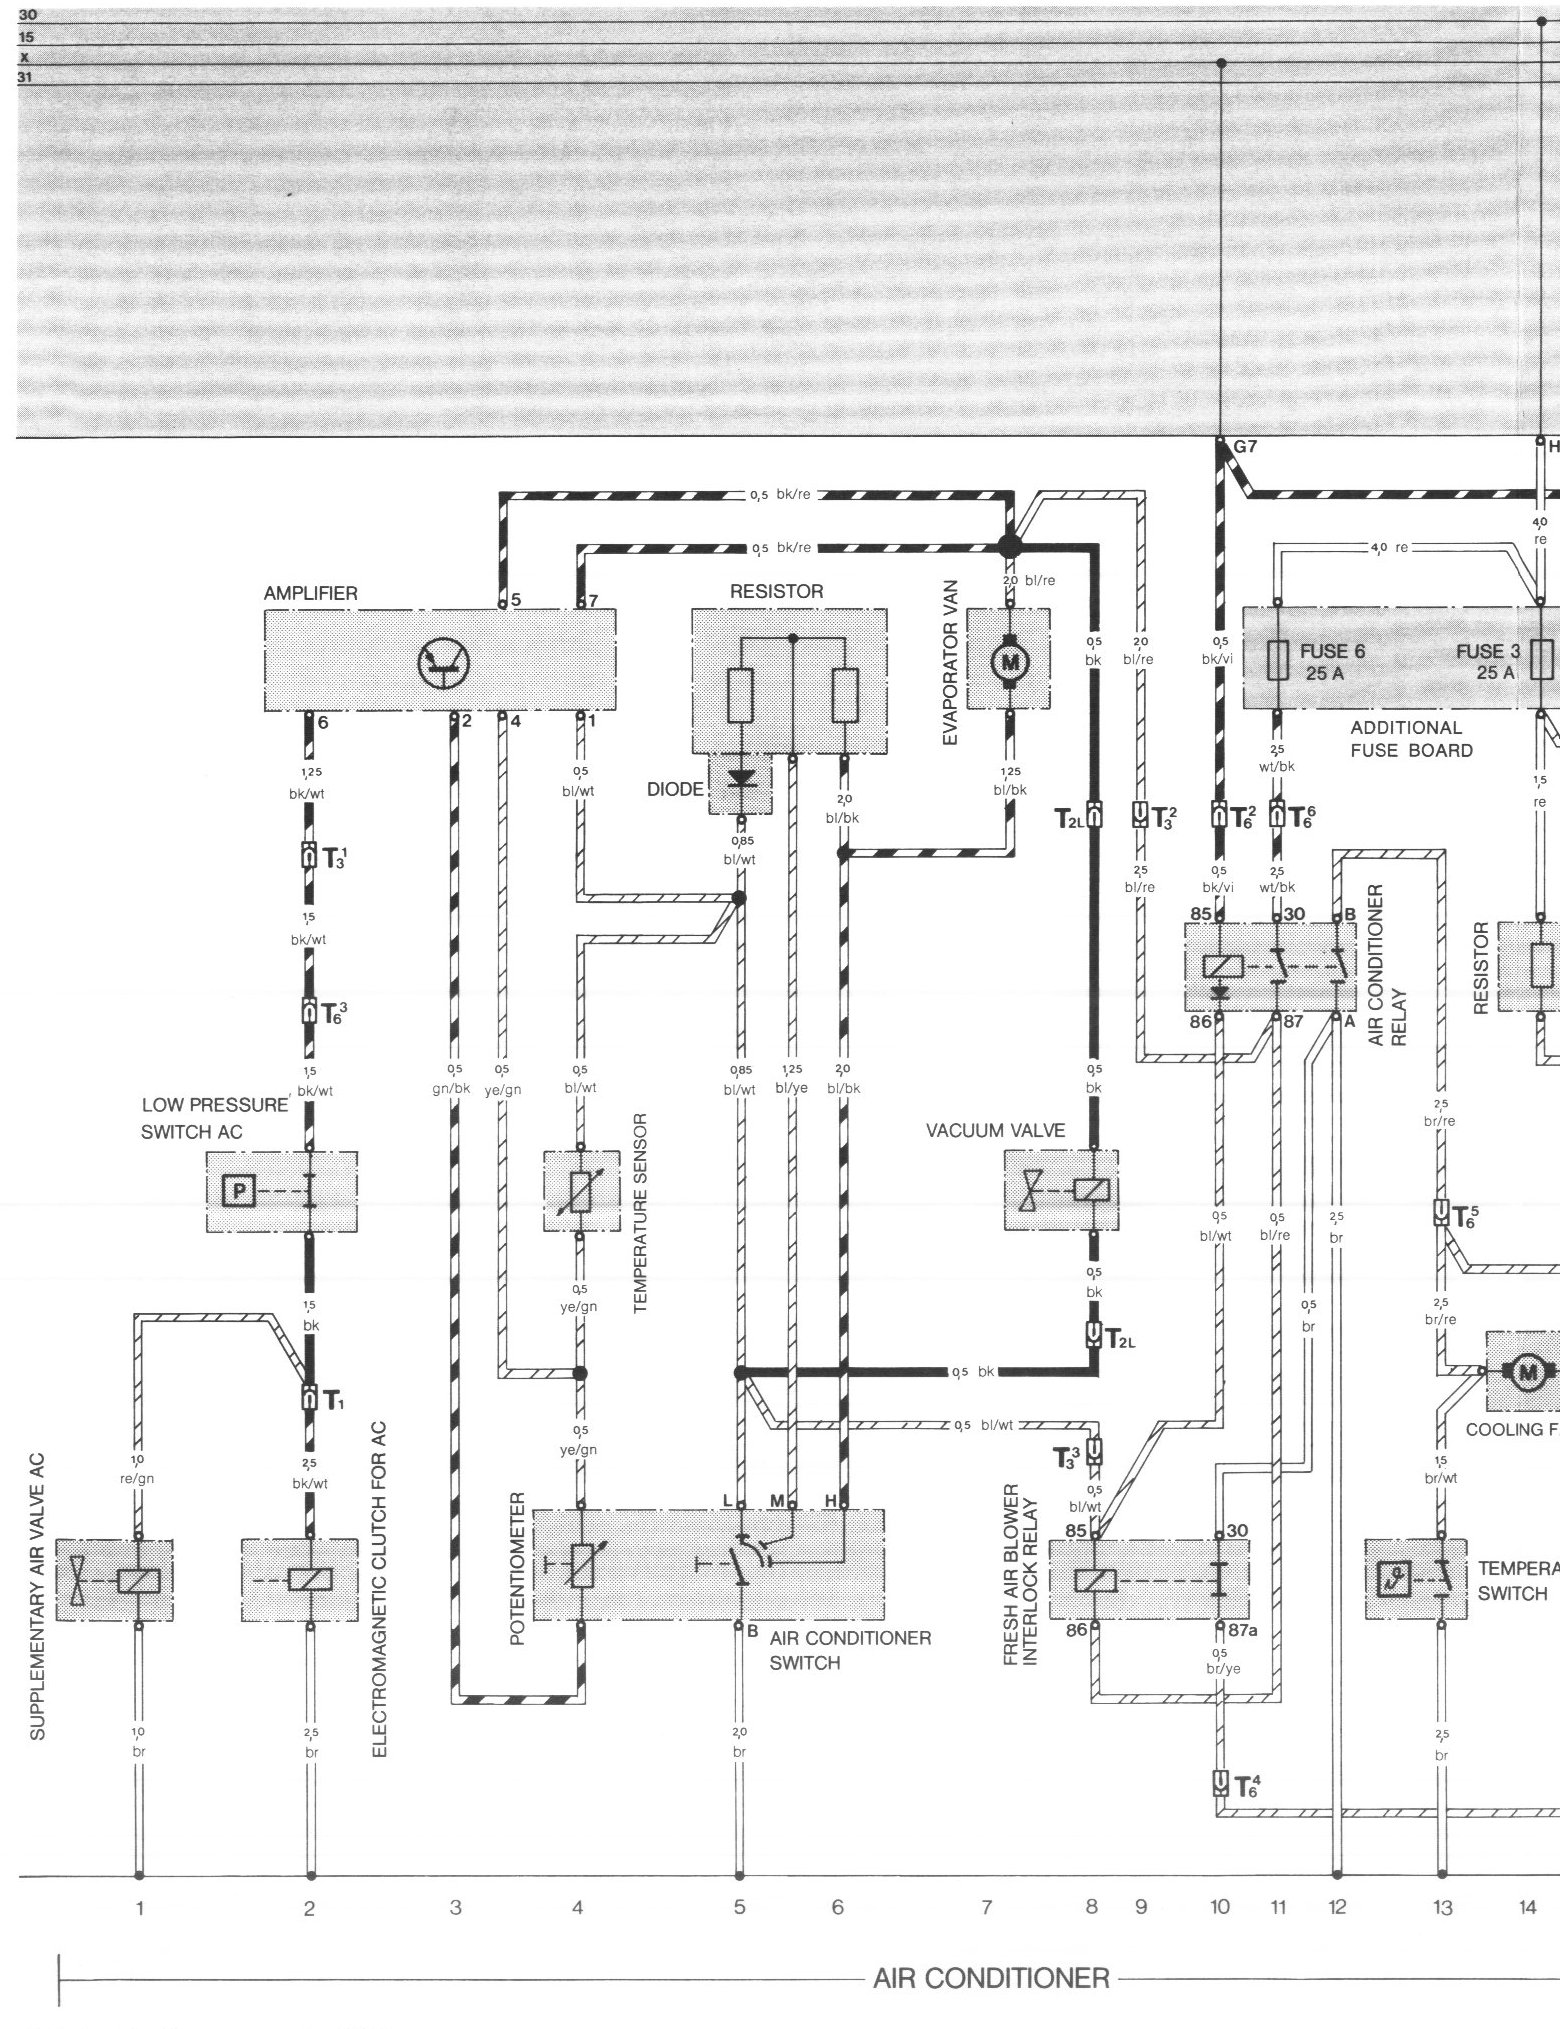 944_84_AC_1 pelican parts porsche 924 944 electrical diagrams 1984 porsche 944 wiring diagram at bayanpartner.co